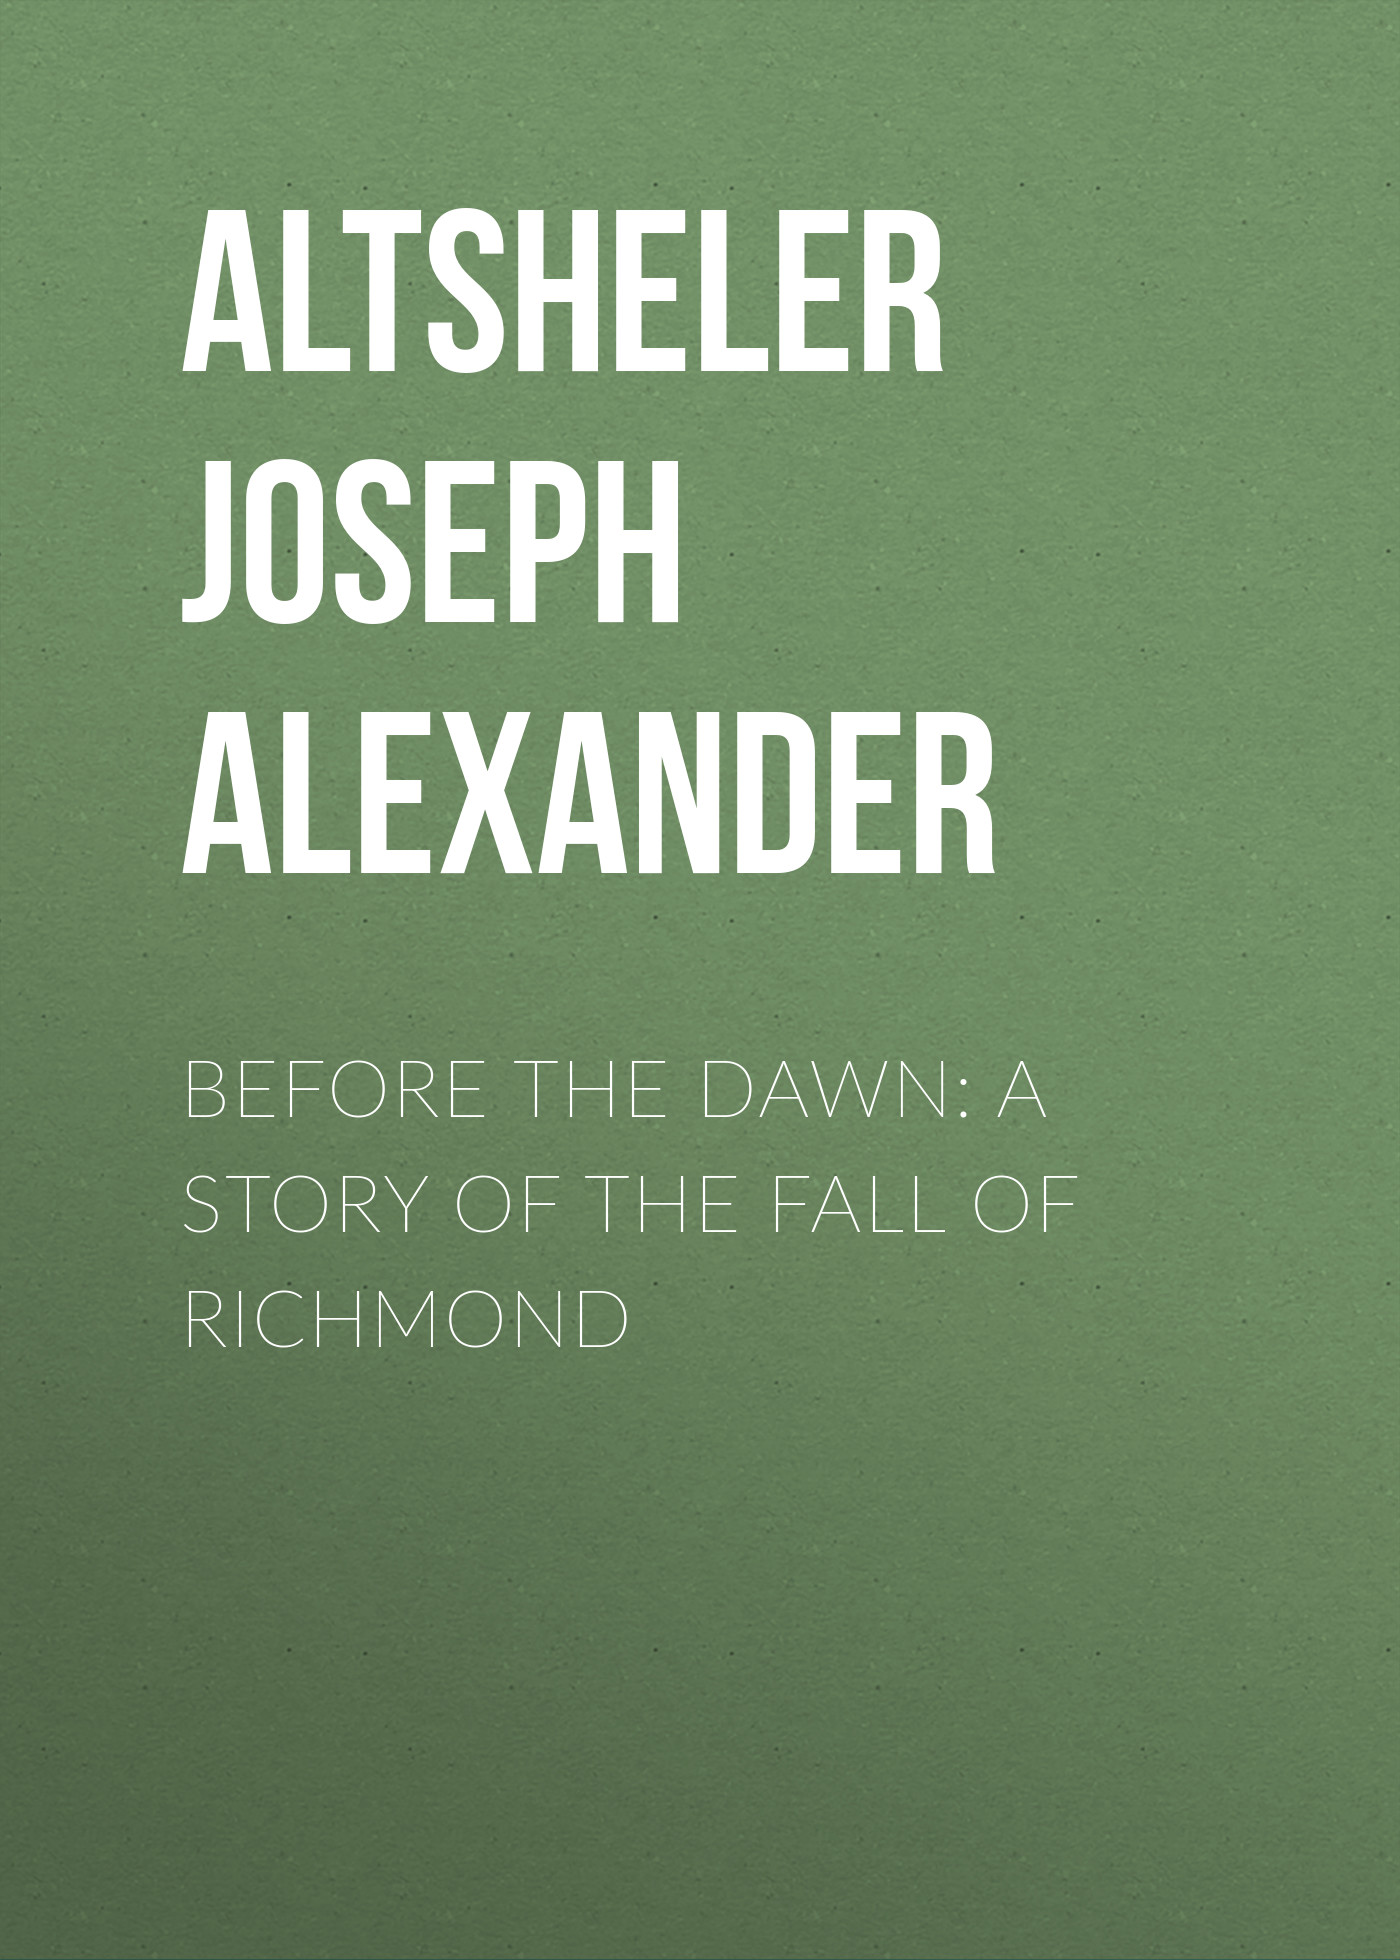 Altsheler Joseph Alexander Before the Dawn: A Story of the Fall of Richmond